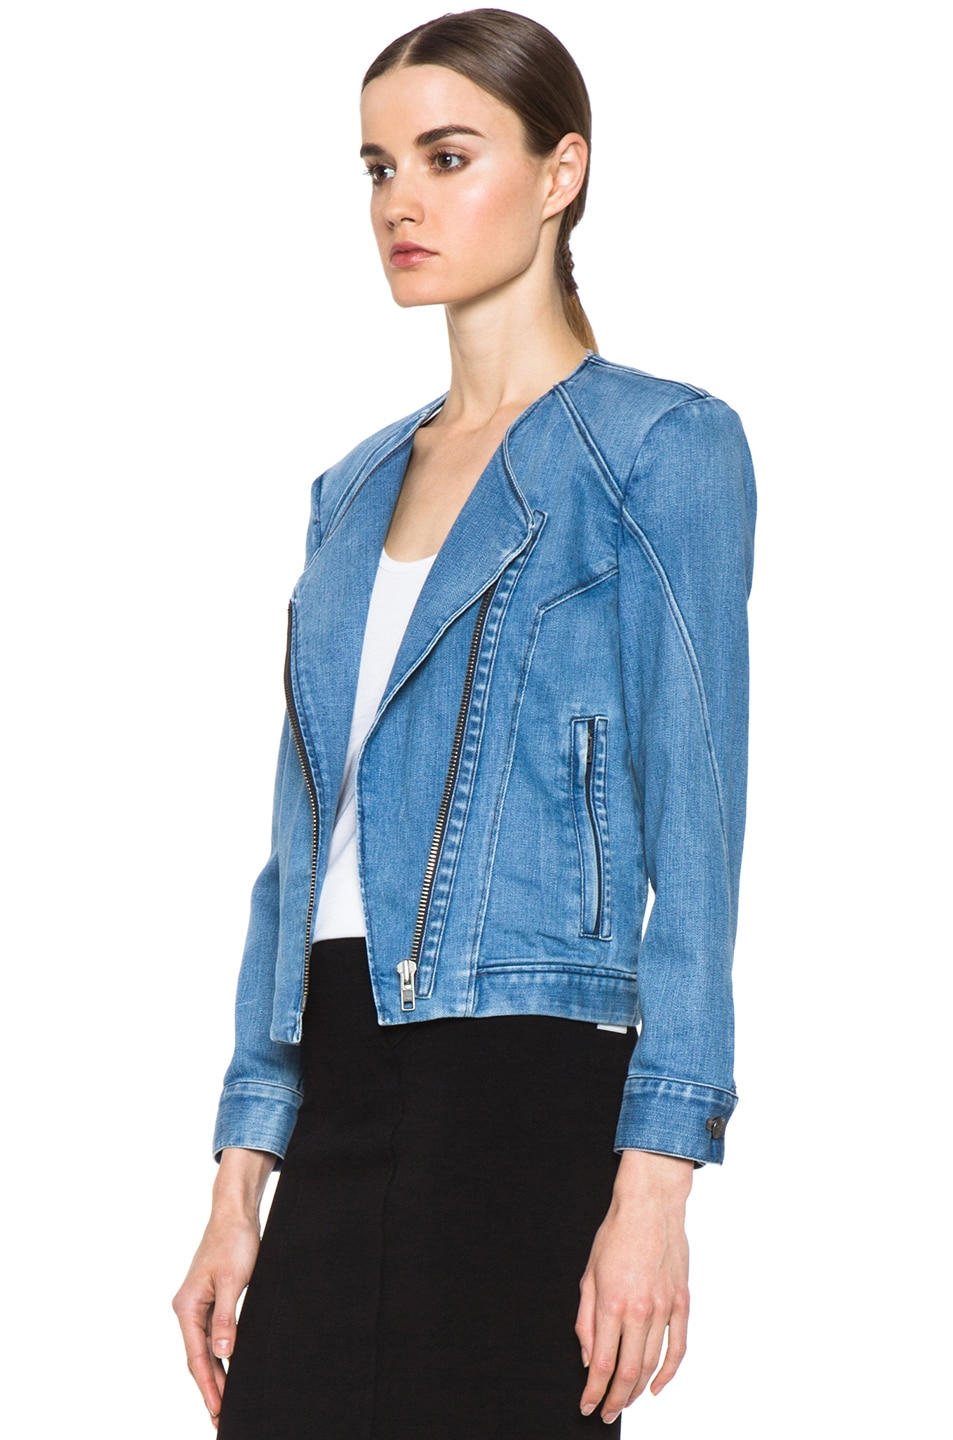 Collection Of Denim Moto Jacket Best Fashion Trends And